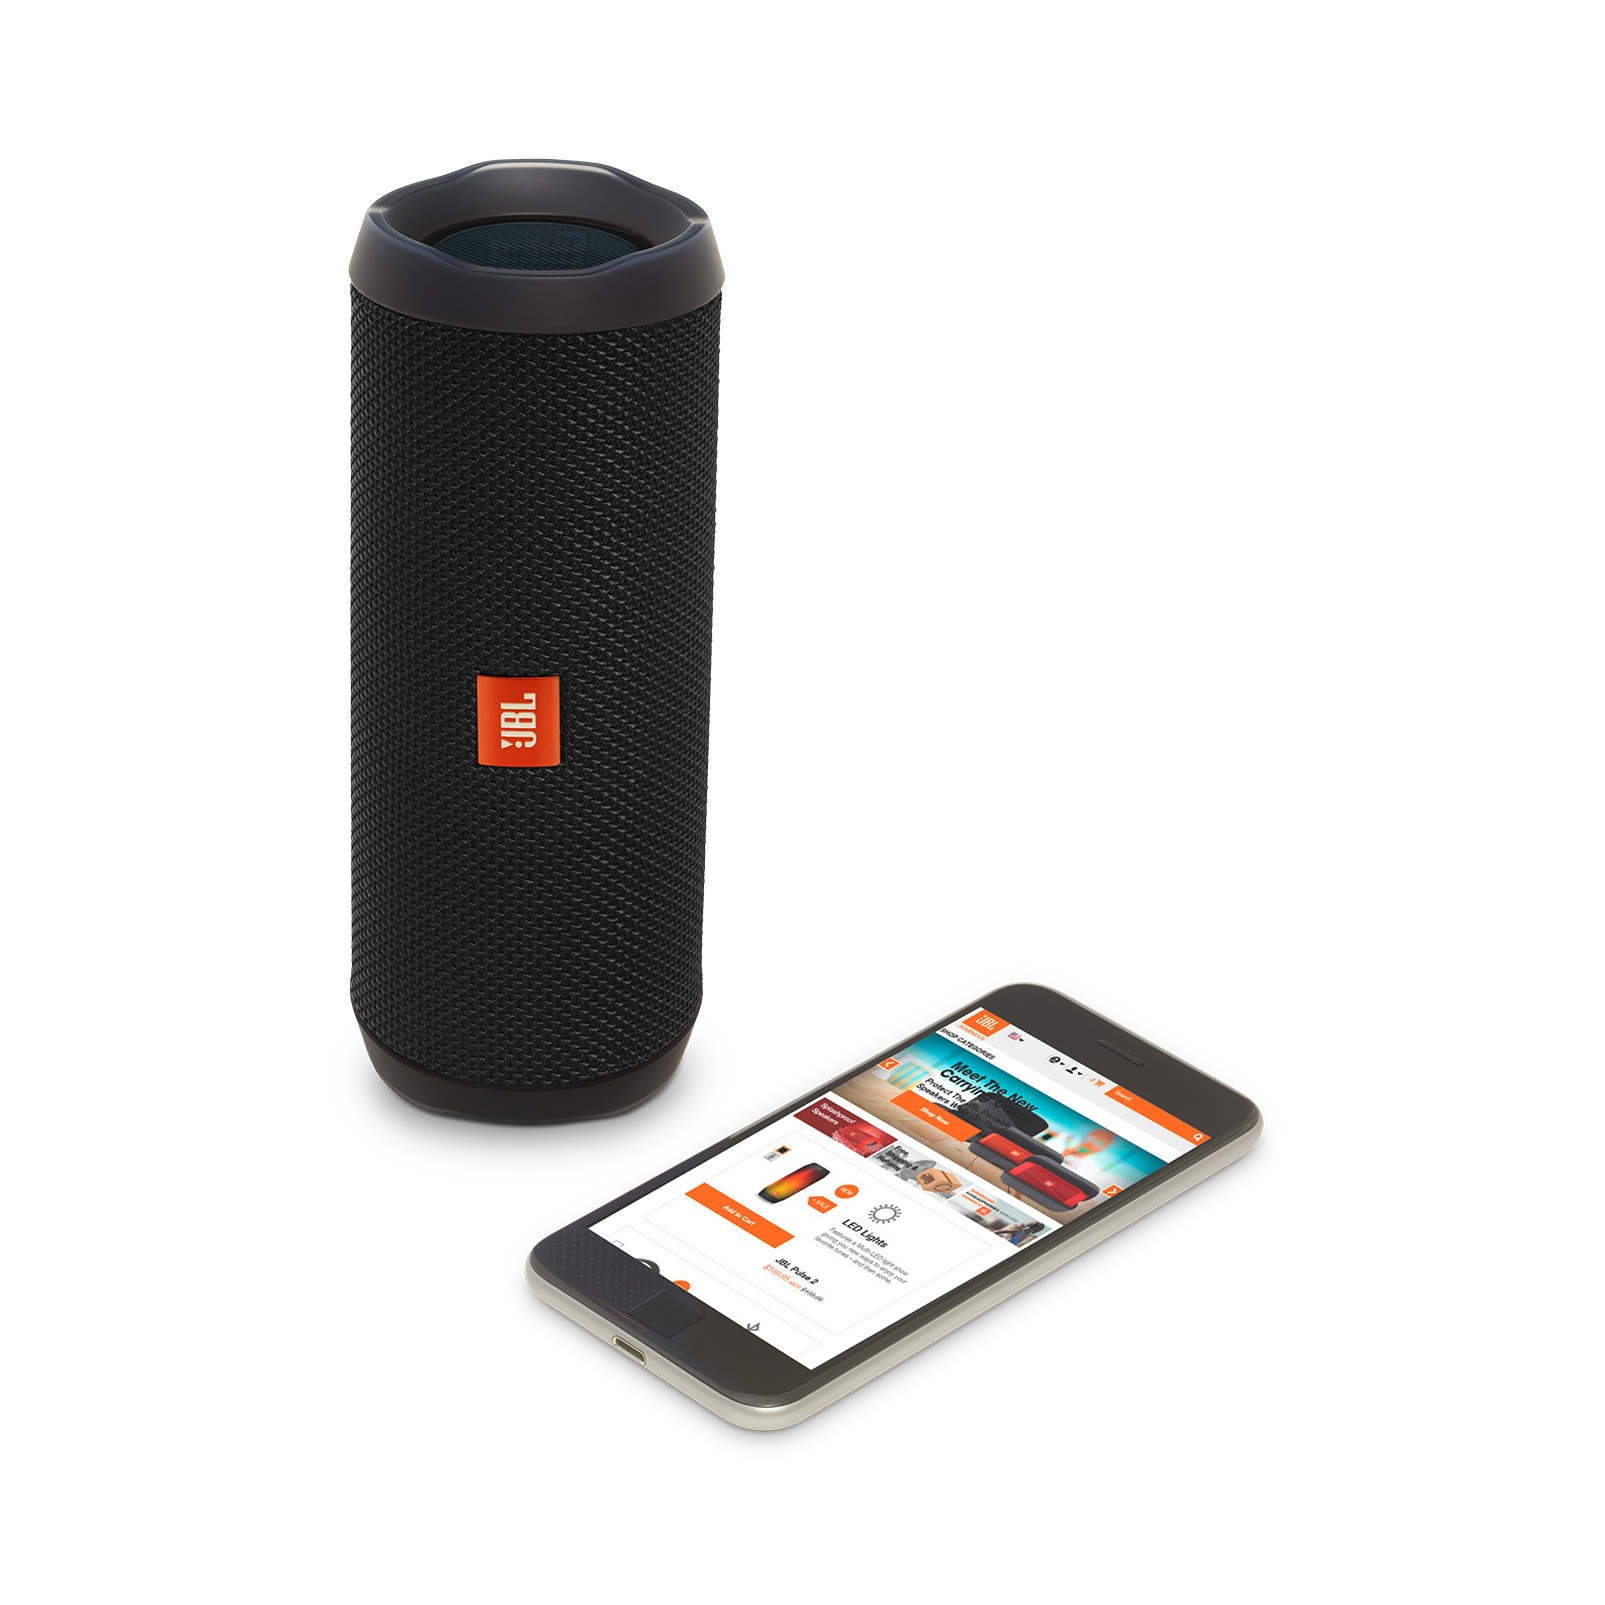 JBL Flip 4 - Black - A full-featured waterproof portable Bluetooth speaker with surprisingly powerful sound. - Detailshot 2